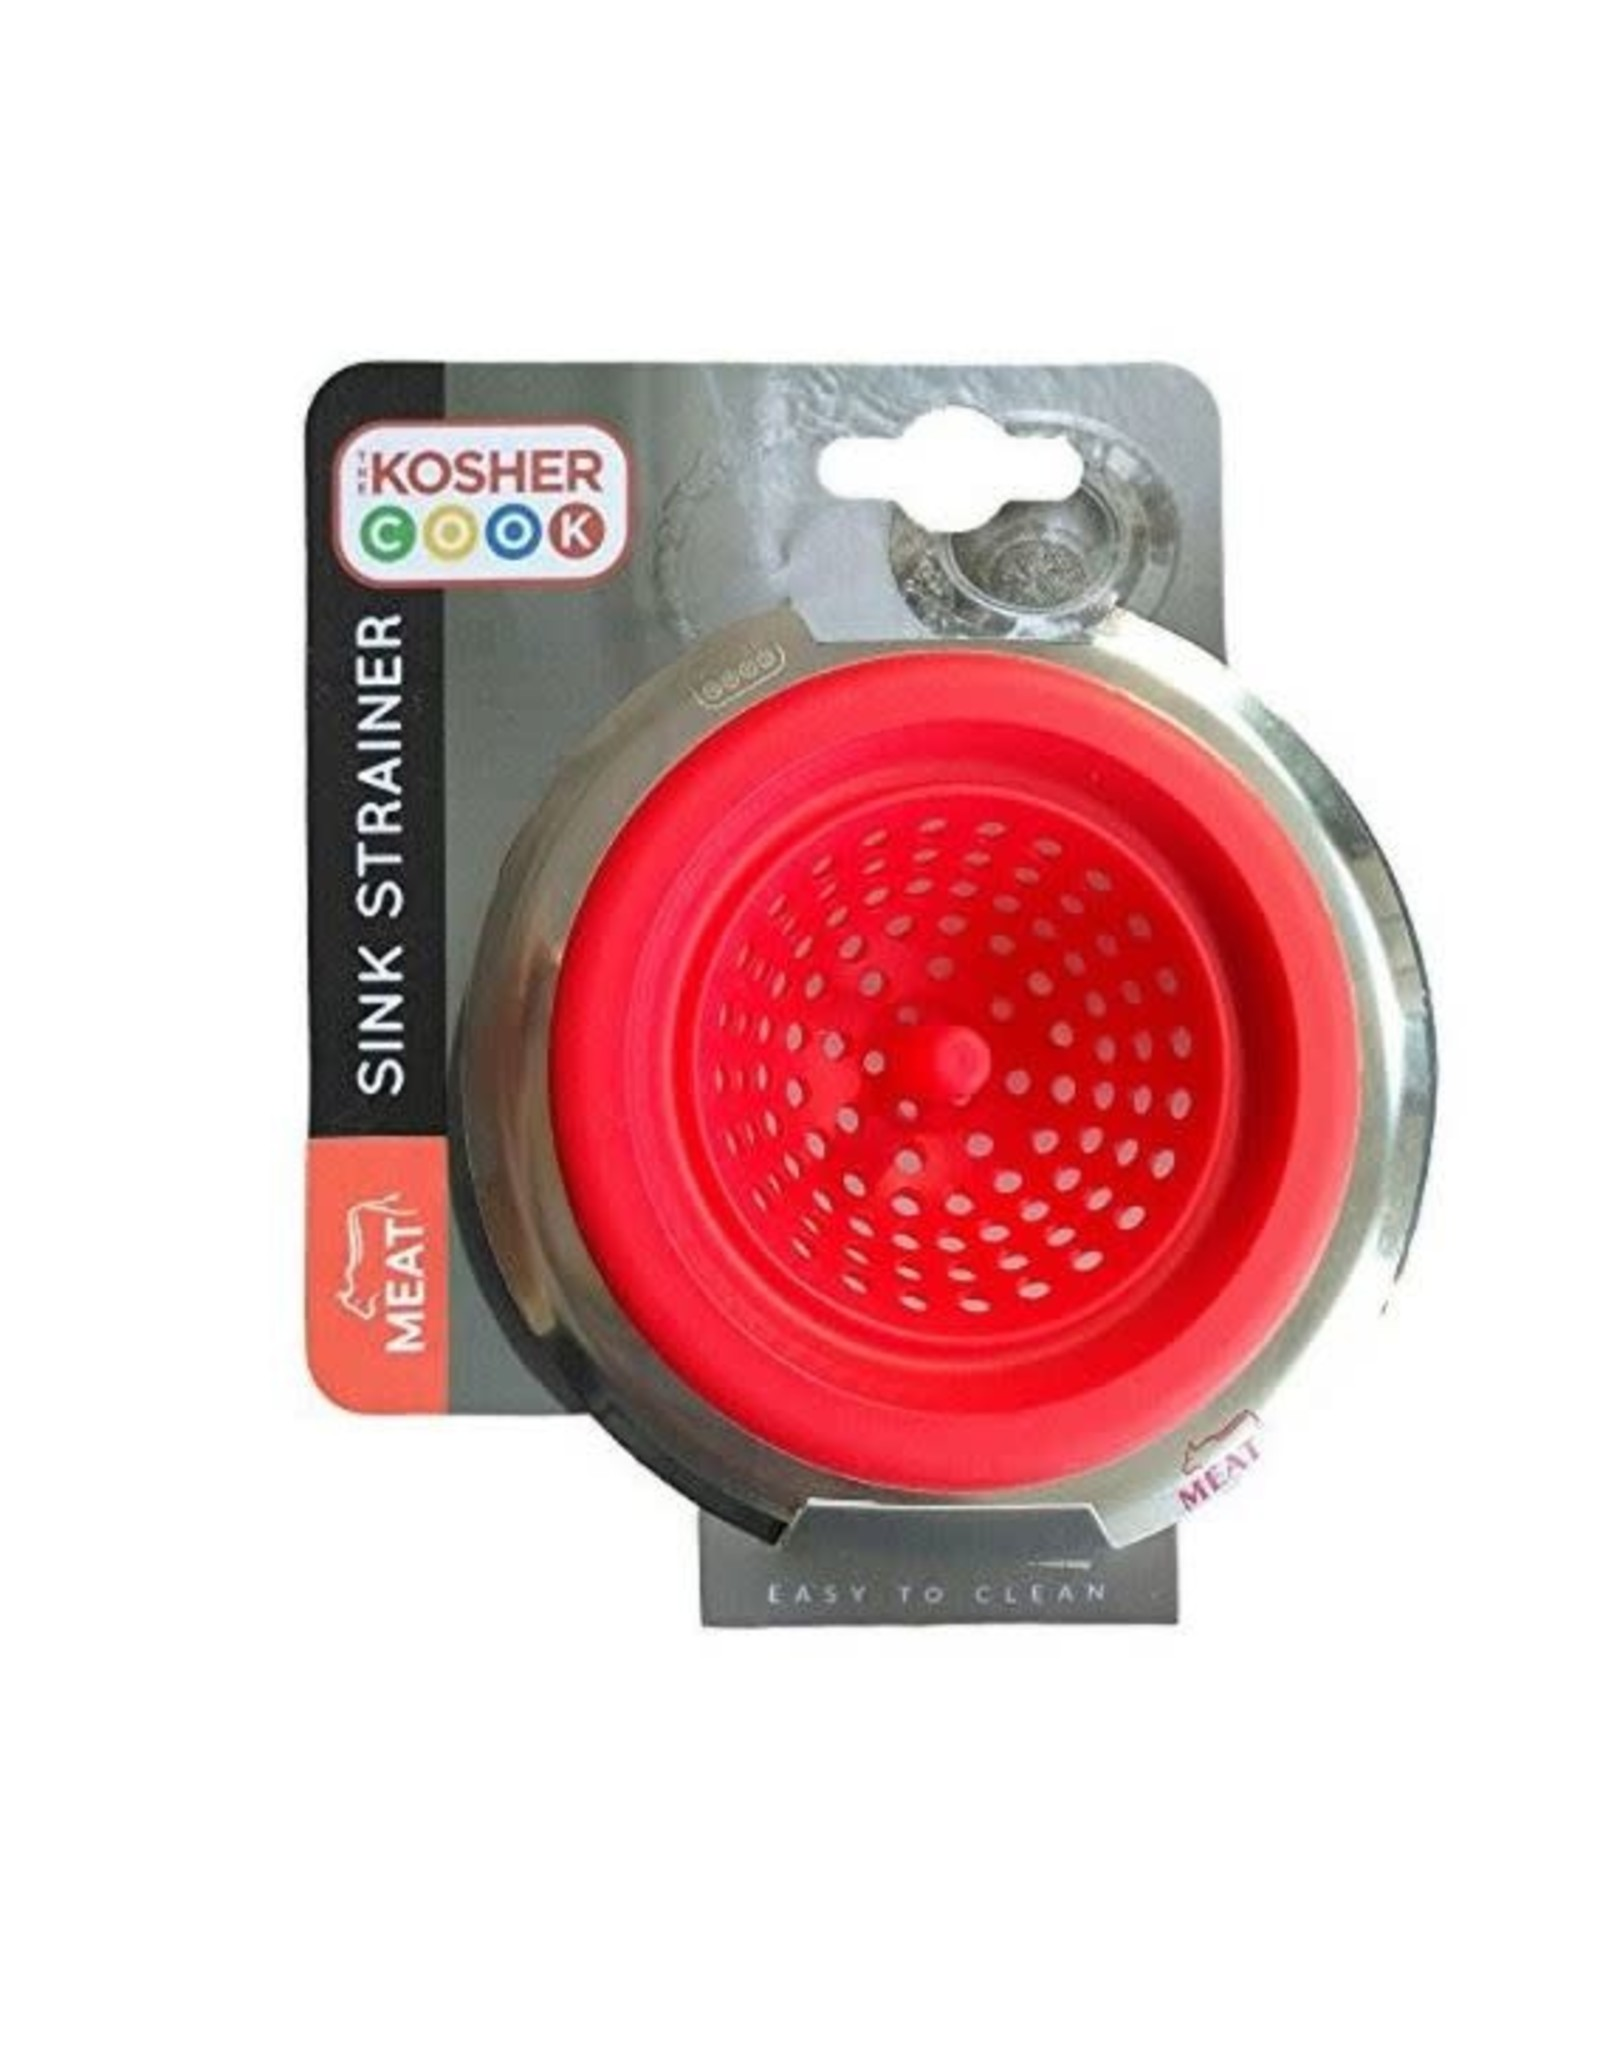 Kosher Cook Silicone Sink Strainer - Meat